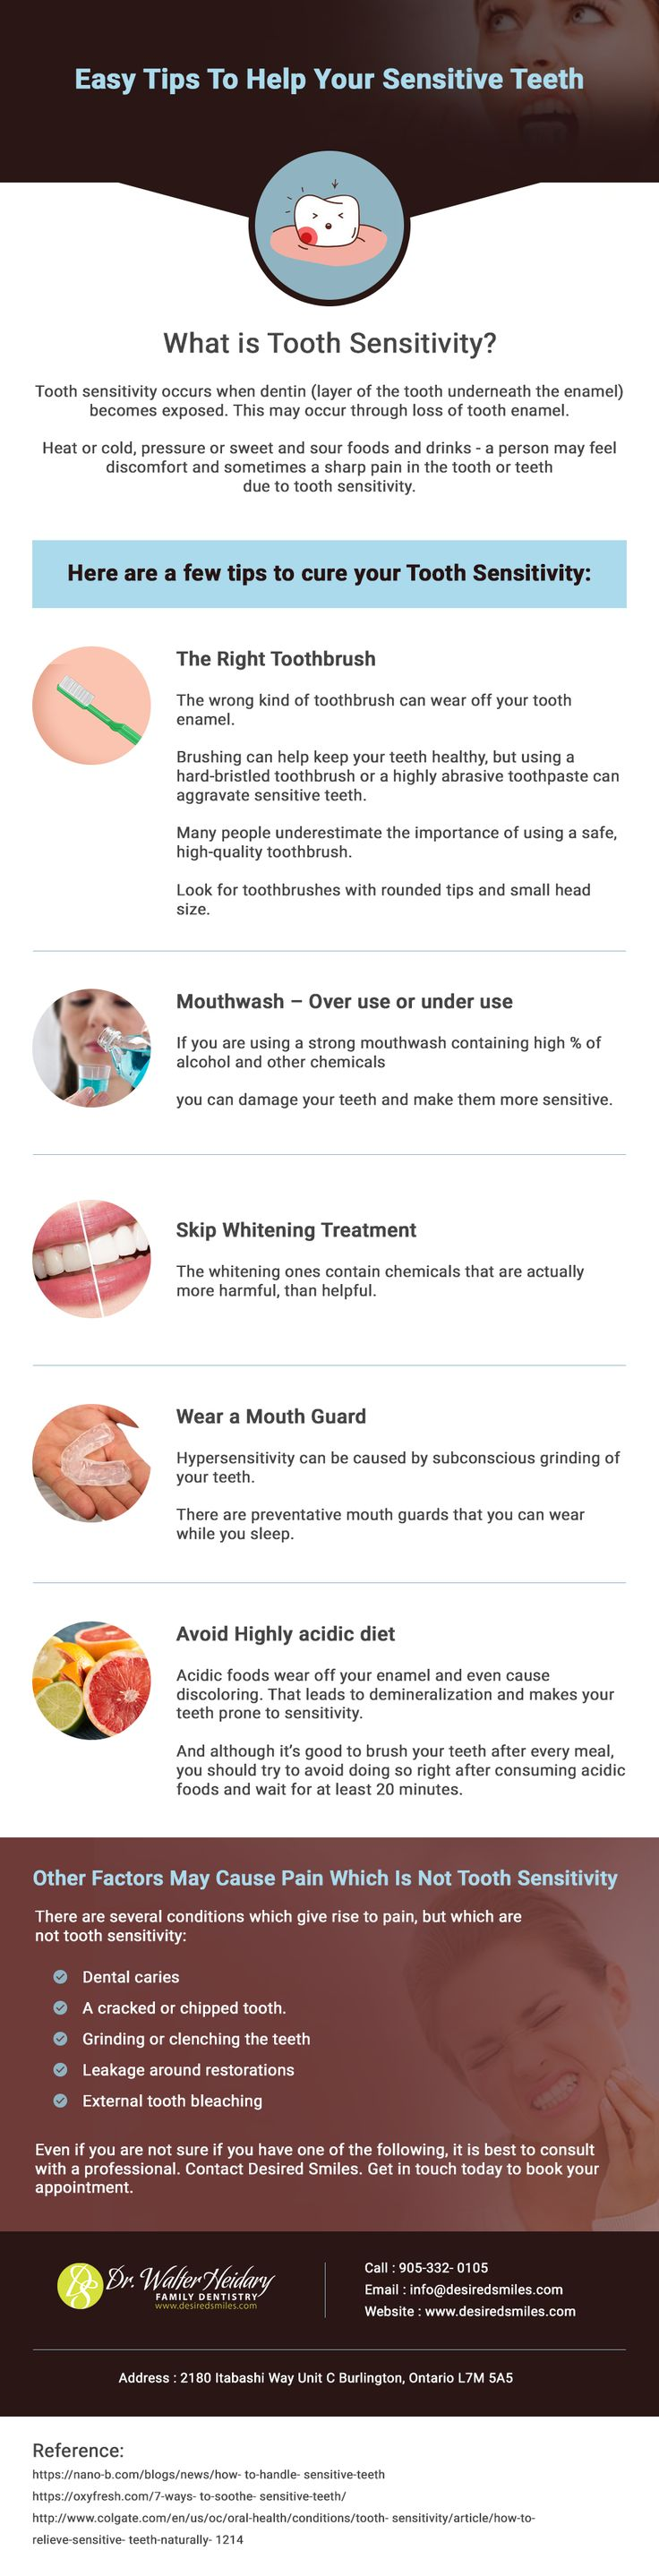 Troubled with tooth sensitivity? Read this infographic for useful tips to treat sensitive tooth problems. Desired Smiles has the solution for all your dental problems. Visit www.desiredsmiles.com for any queries regarding your dental health problems.